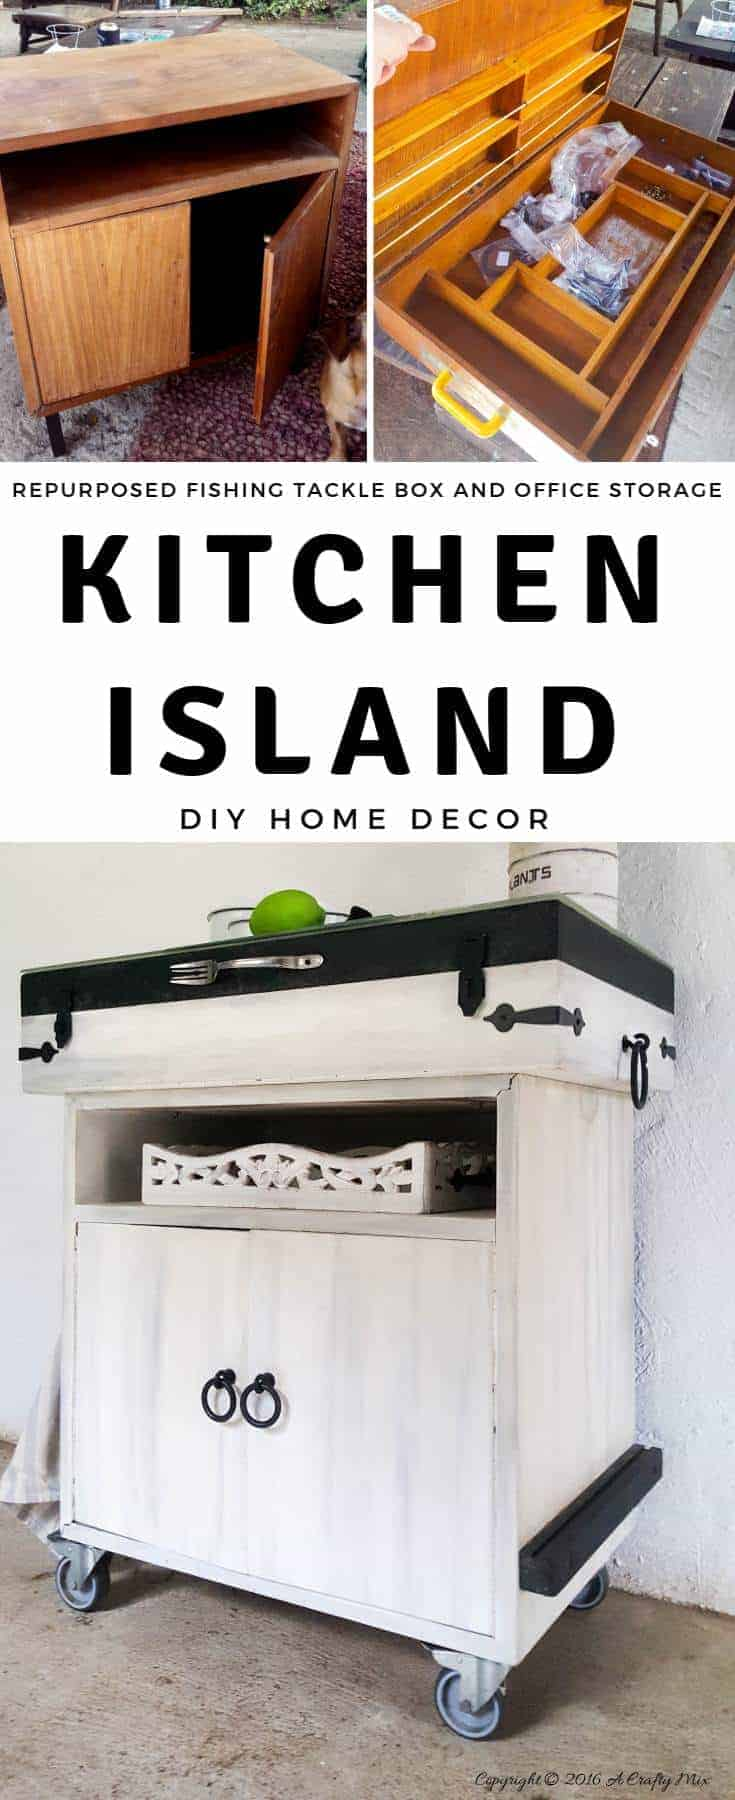 When two totally unrelated things come together they make magic. Kitchen Island kinda magic. A fishing tackle box and old office storage are repurposed into this beautiful island. #DIYHomeDecor #DIYKitchenIsland #RepurposingIdeas #FishingTackleBox